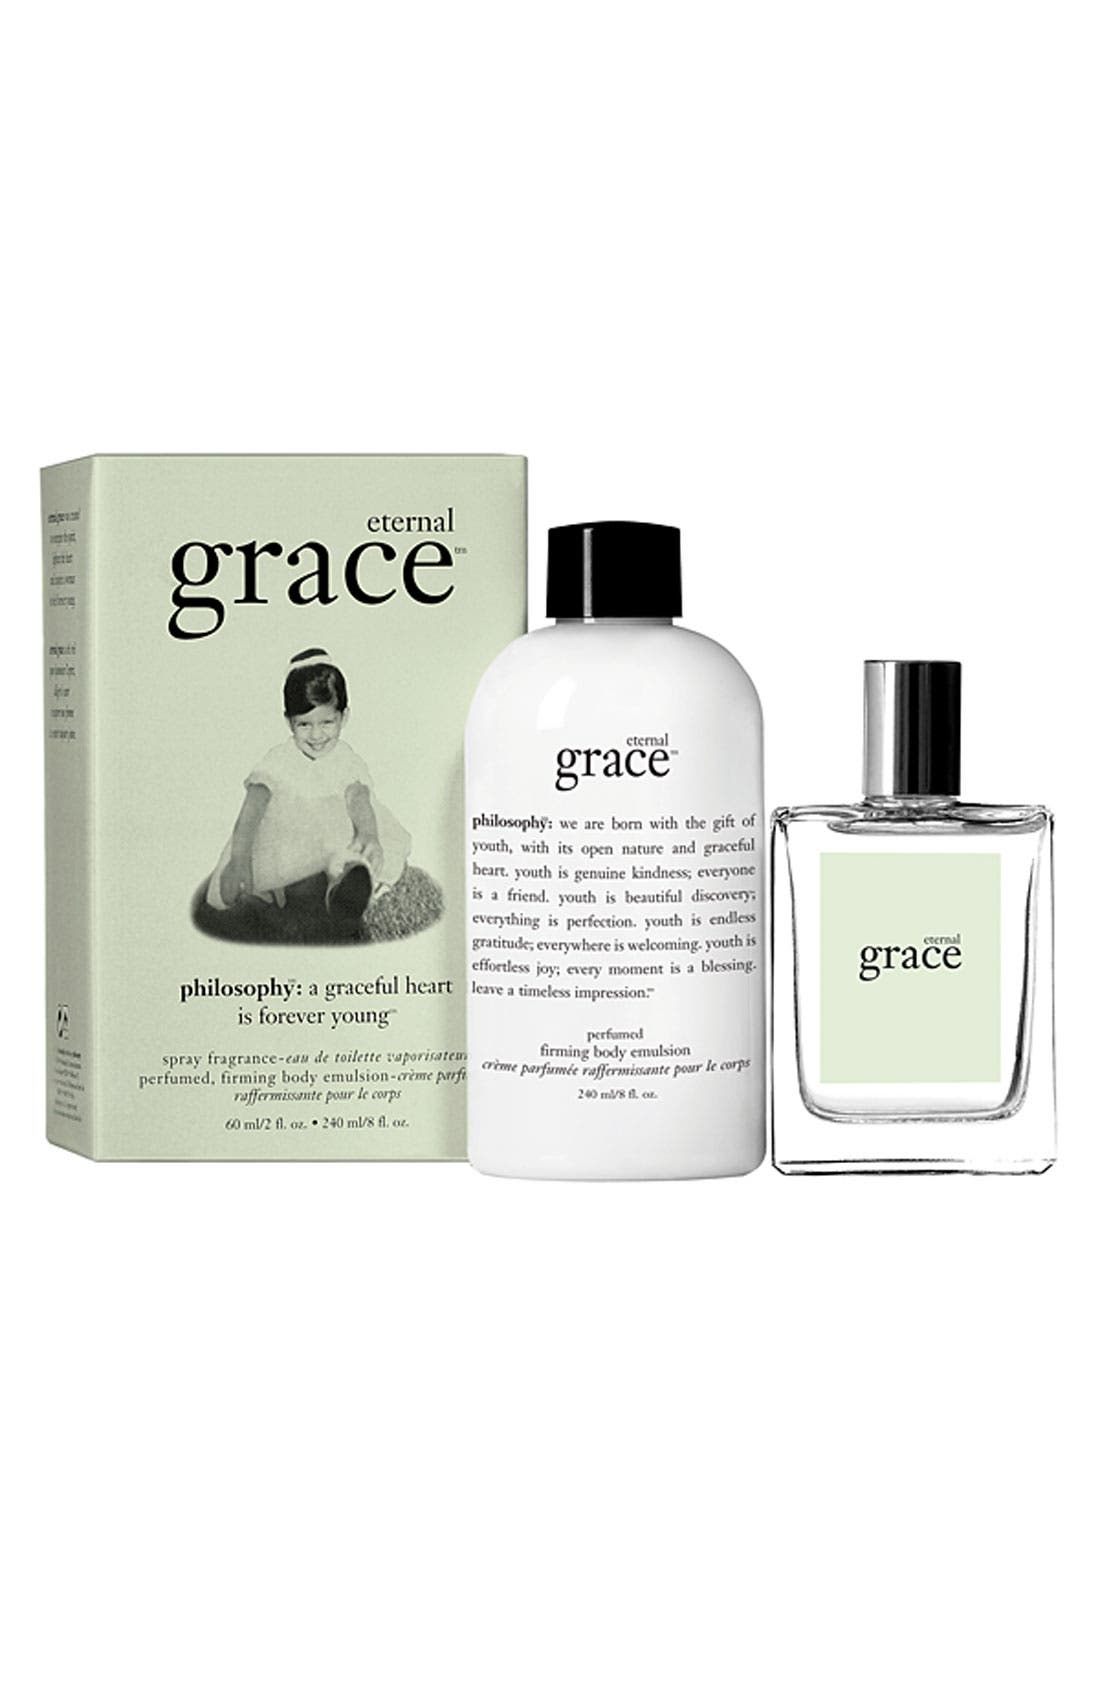 Alternate Image 1 Selected - philosophy 'eternal grace' spray fragrance & firming body emulsion ($62 Value)